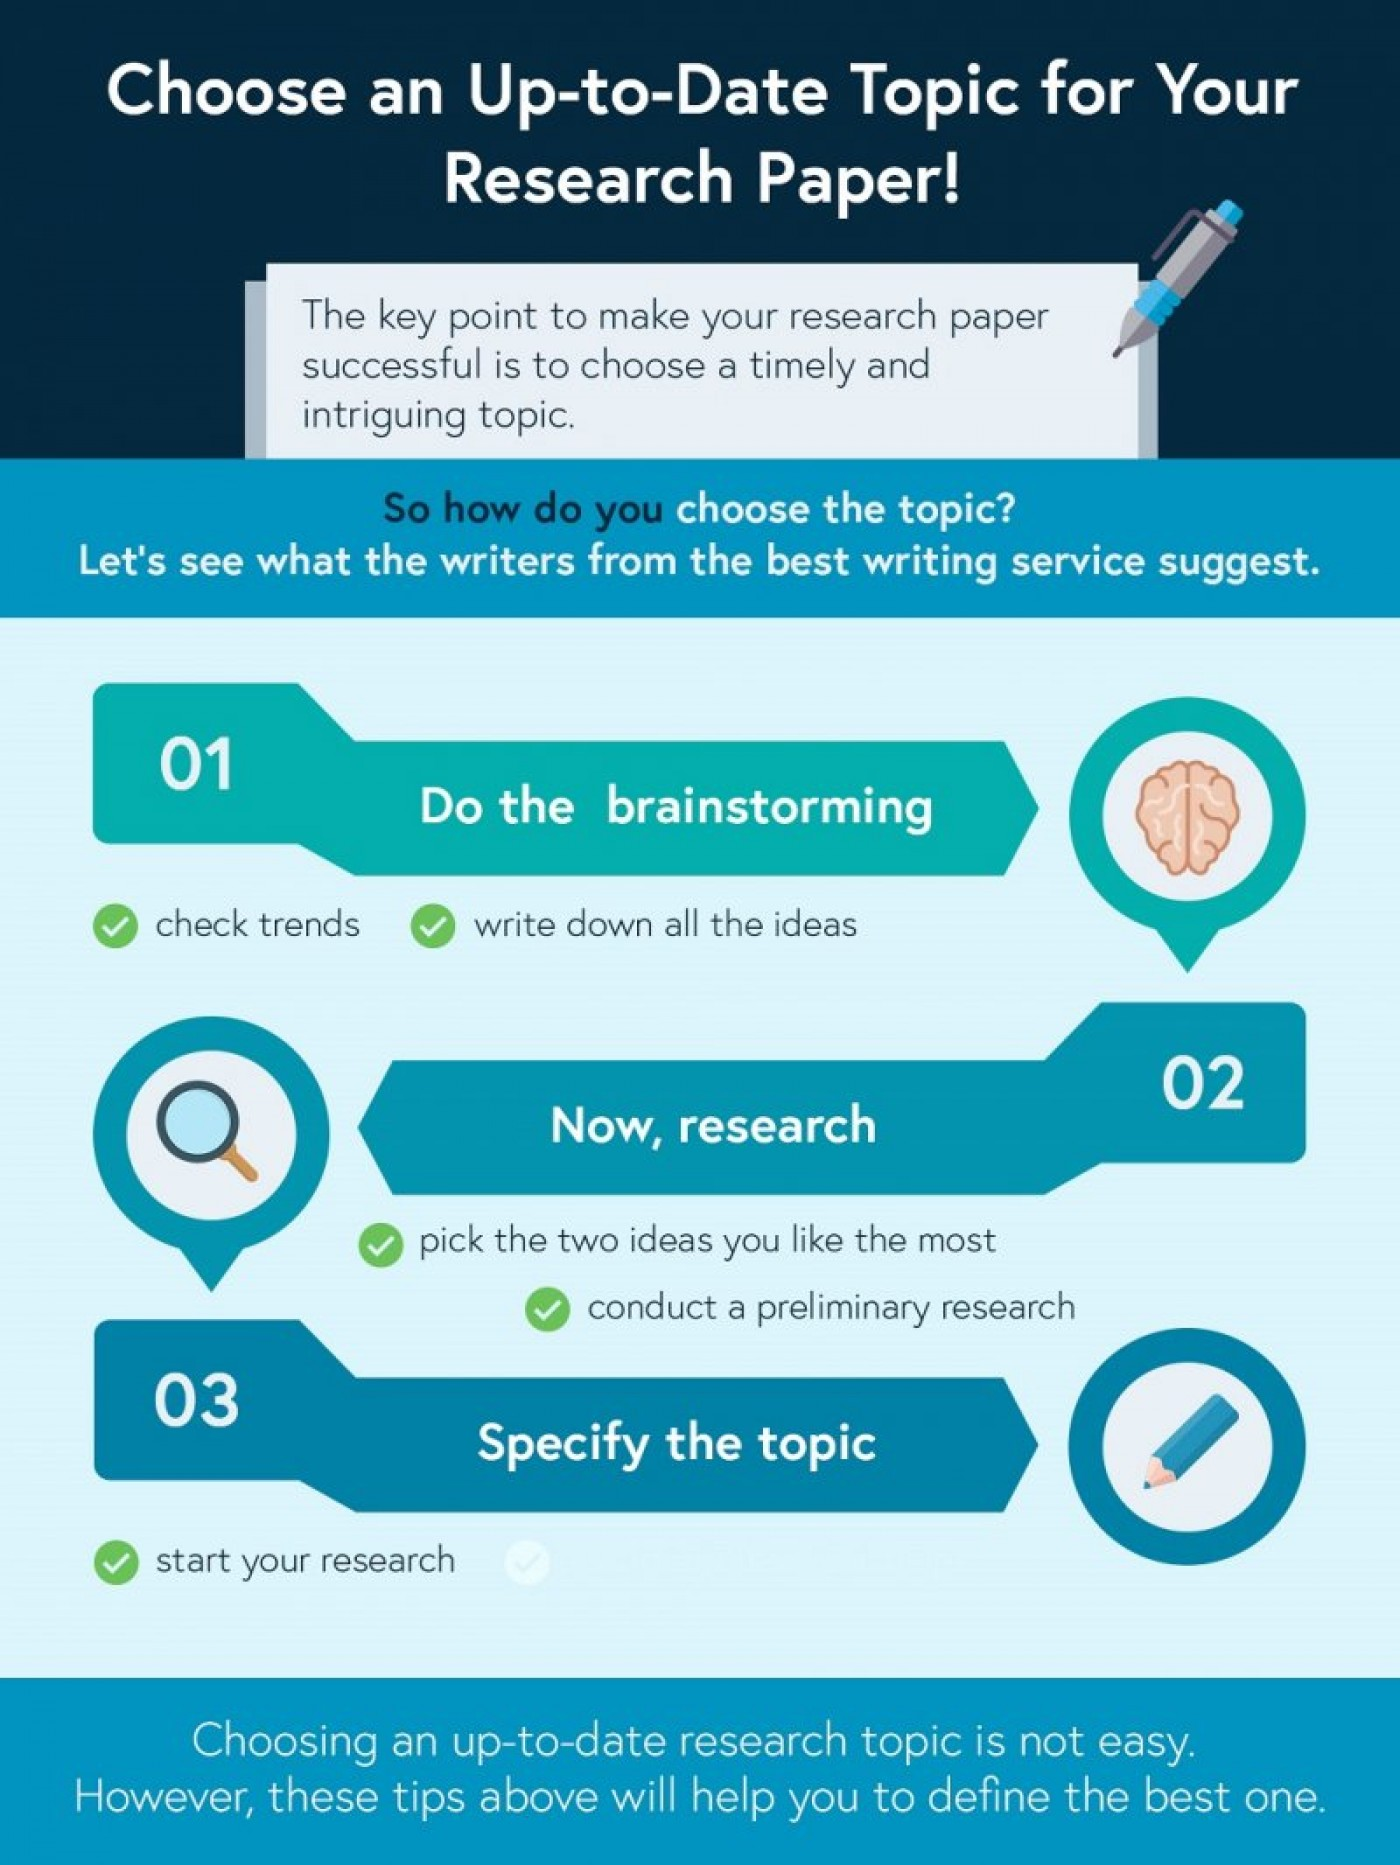 006 Research Paper Infographic Writing Dreaded Service Services In India Online Chennai 1400